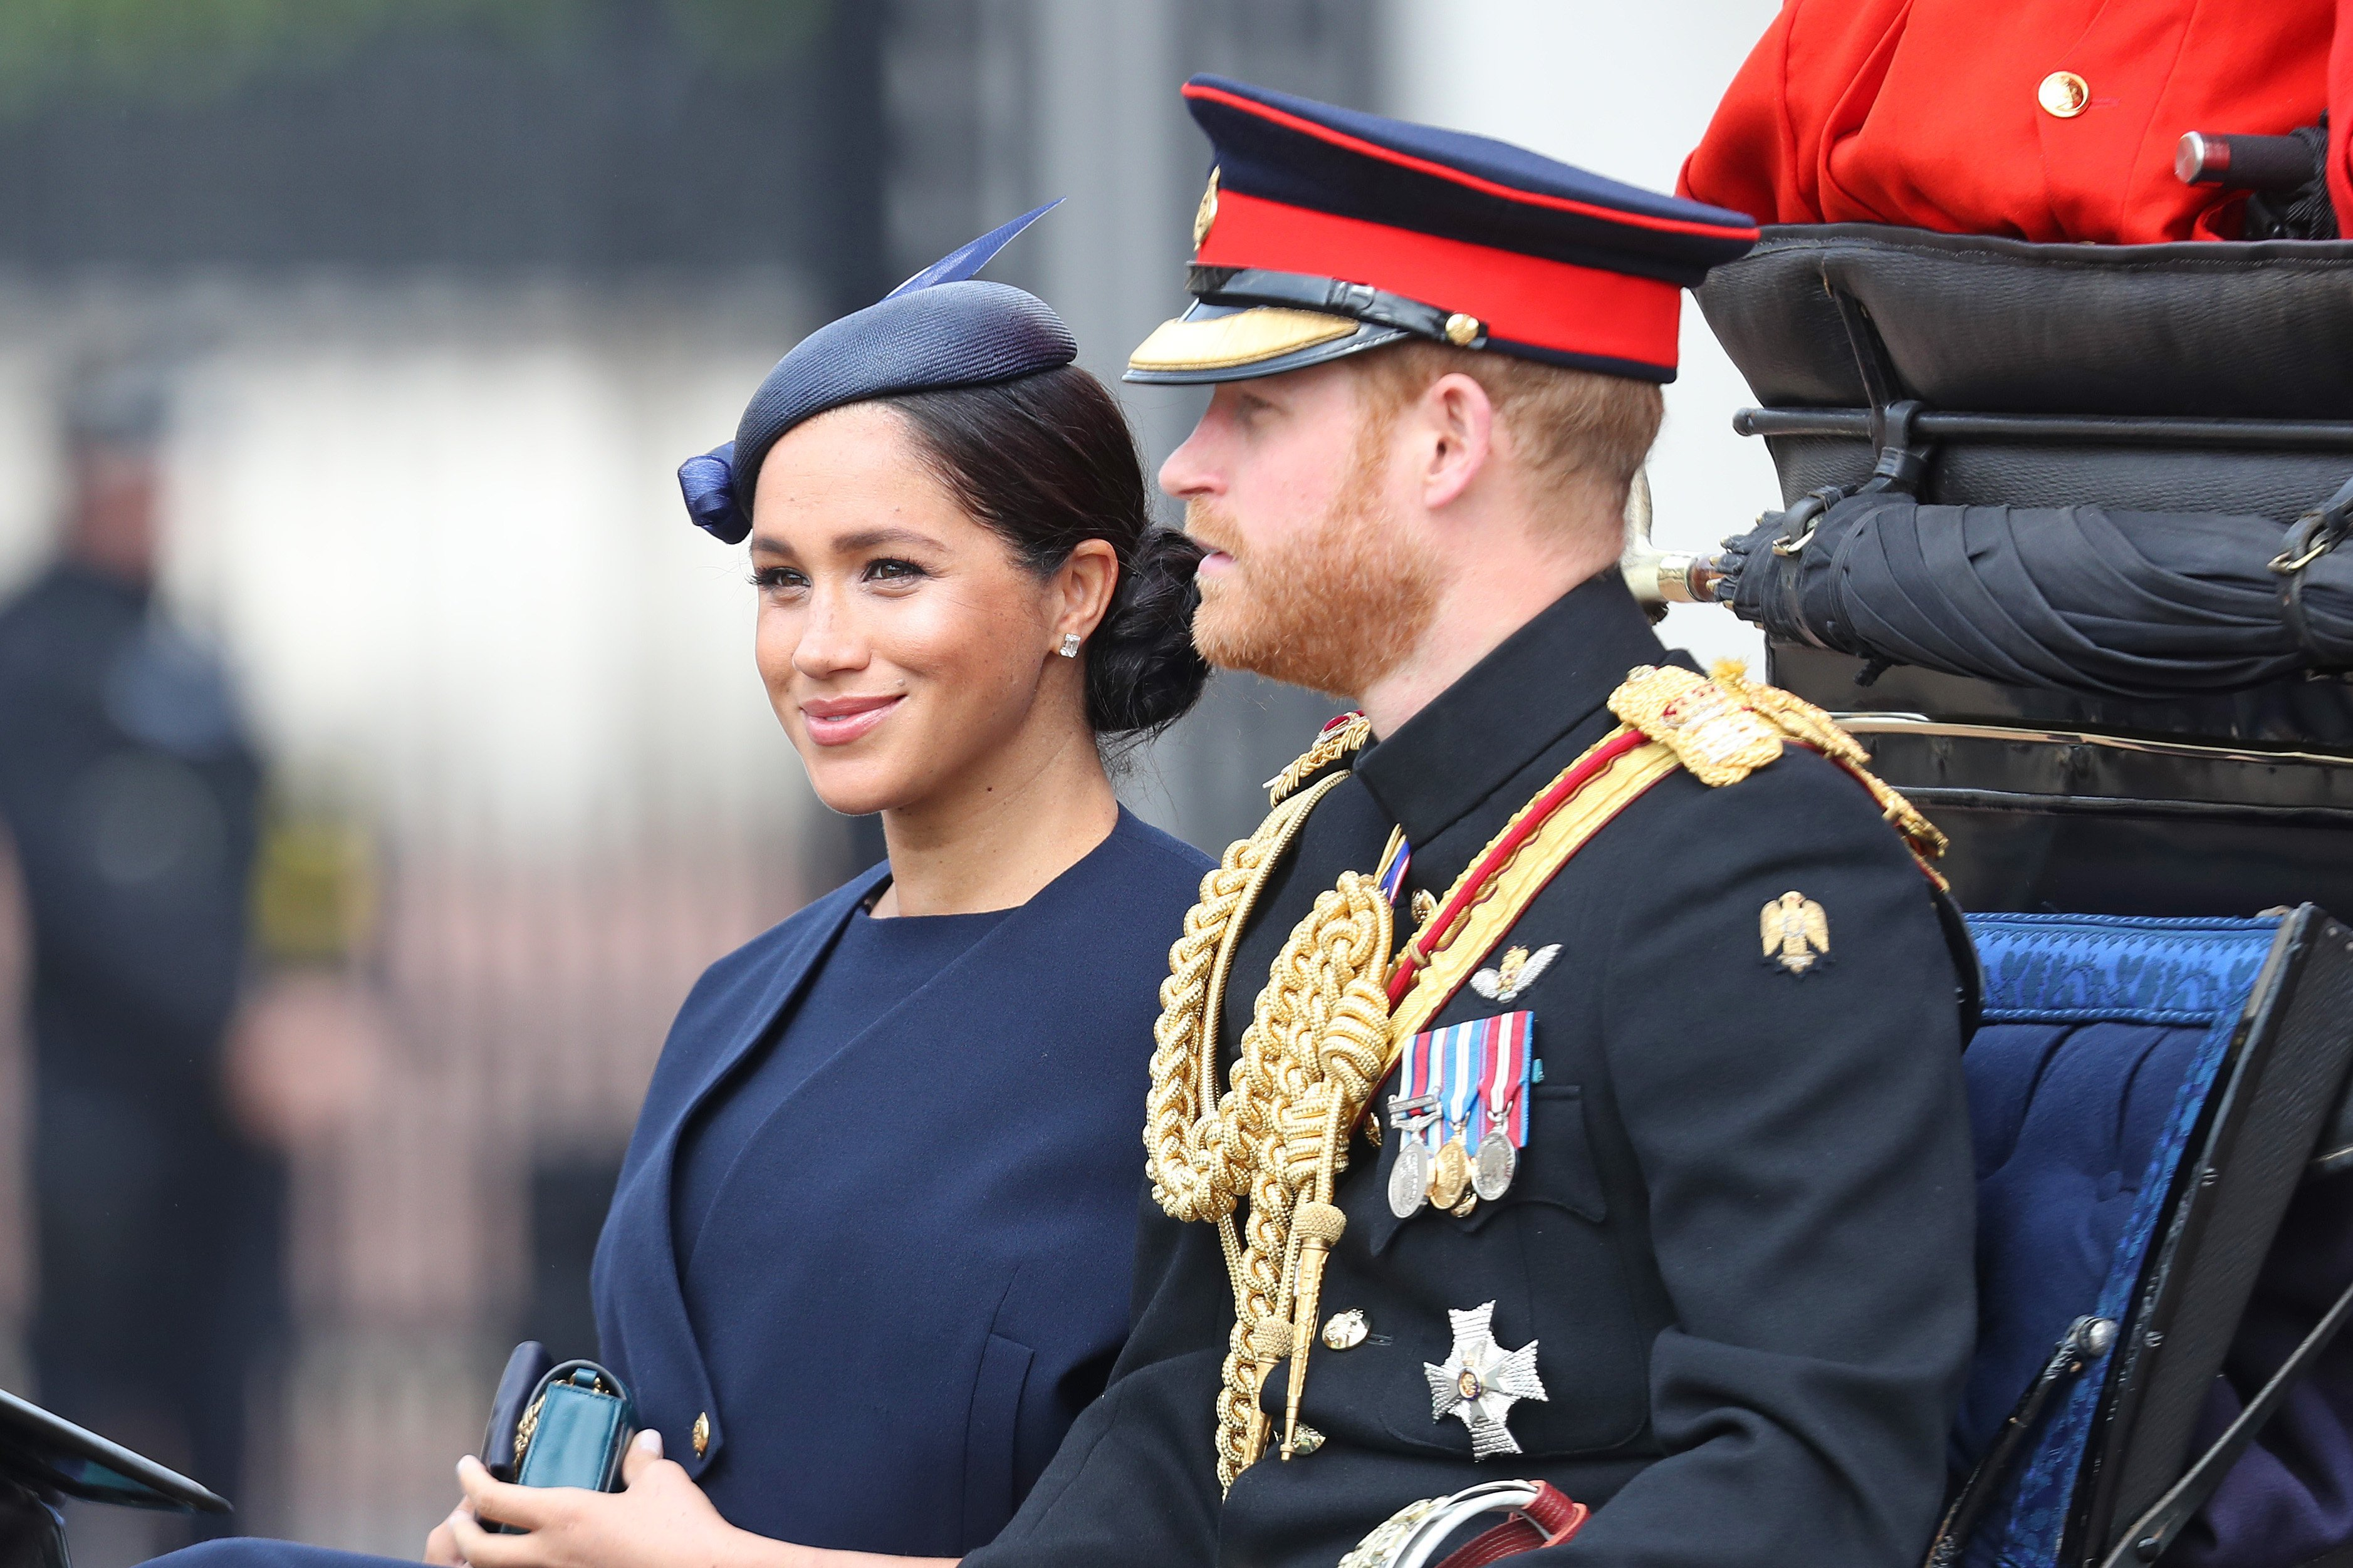 Meghan Markle and Prince Harry arriving at the Buckingham Palace for Trooping the Colour on June 08, 2019 in London, England | Photo: Getty Images